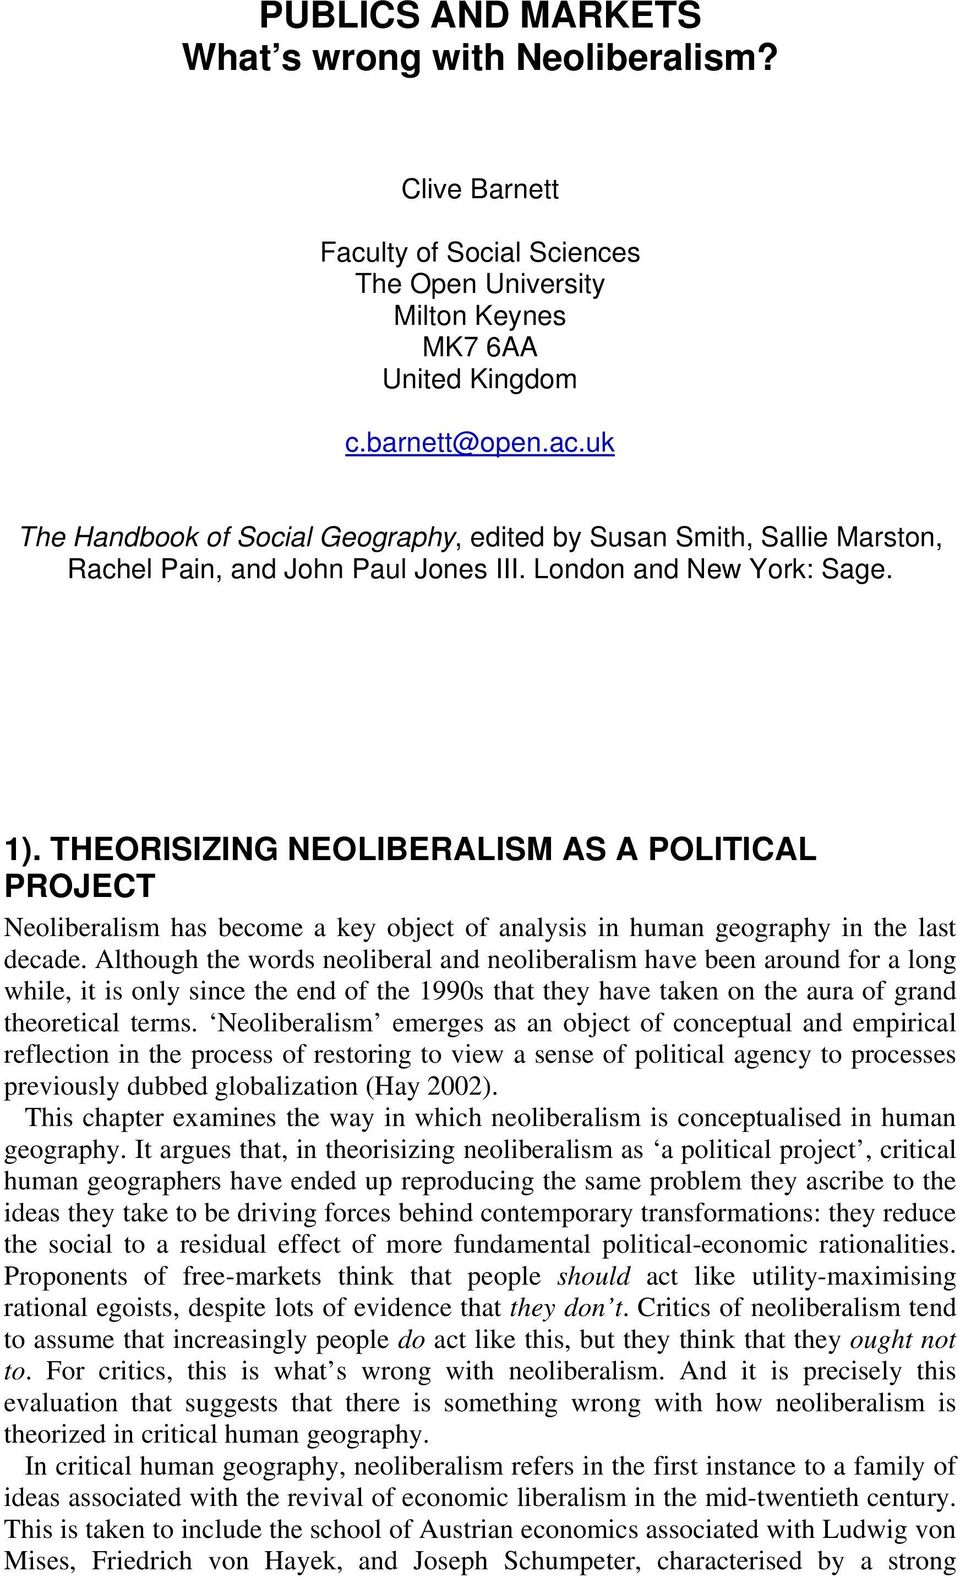 Although the words neoliberal and neoliberalism have been around for a long while, it is only since the end of the 1990s that they have taken on the aura of grand theoretical terms.